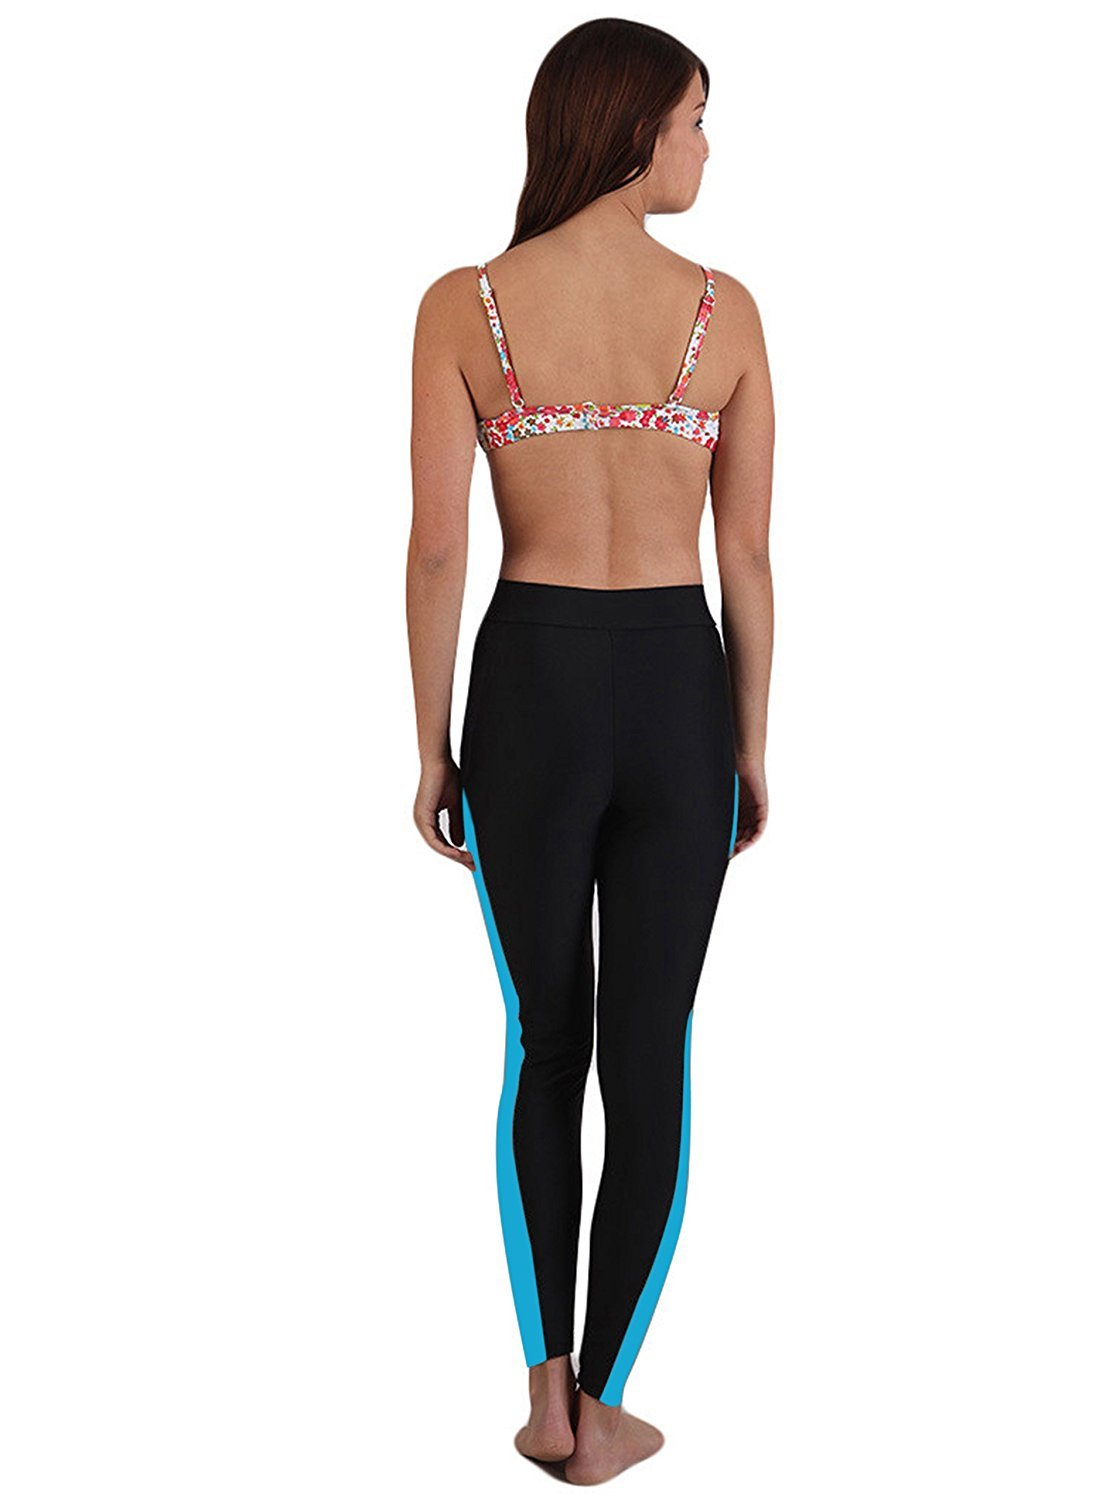 196405d8b9e95 SWISWELL Womens Surfing Leggings Swimming Diving Snorkeling Long Pants  Capri Tights Bottom Elastic Swimwear Sun Protection: Amazon.co.uk: Sports &  Outdoors